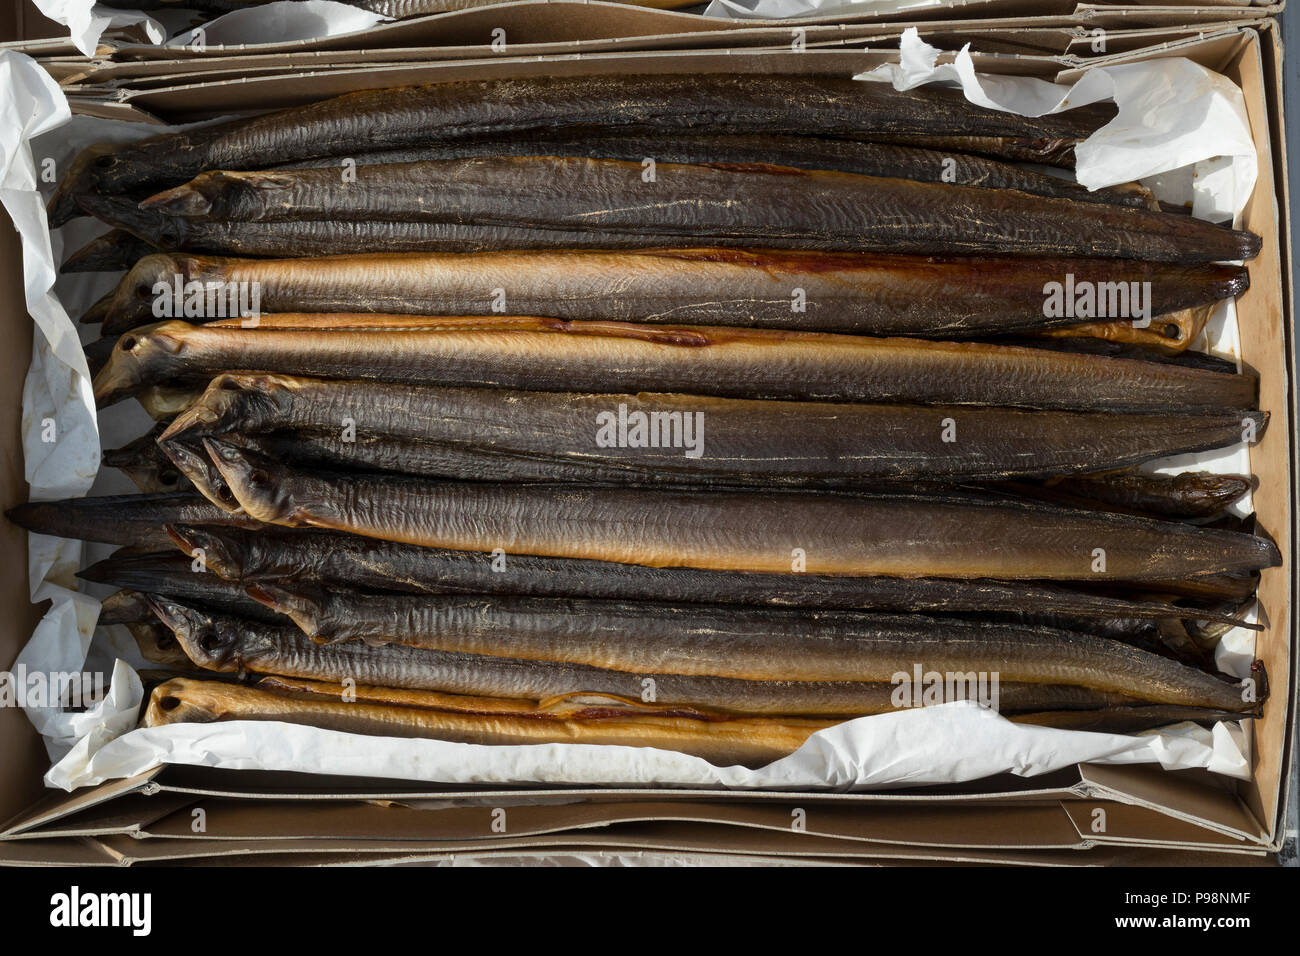 Fresh smoked eels in a cardboard box for sale Stock Photo